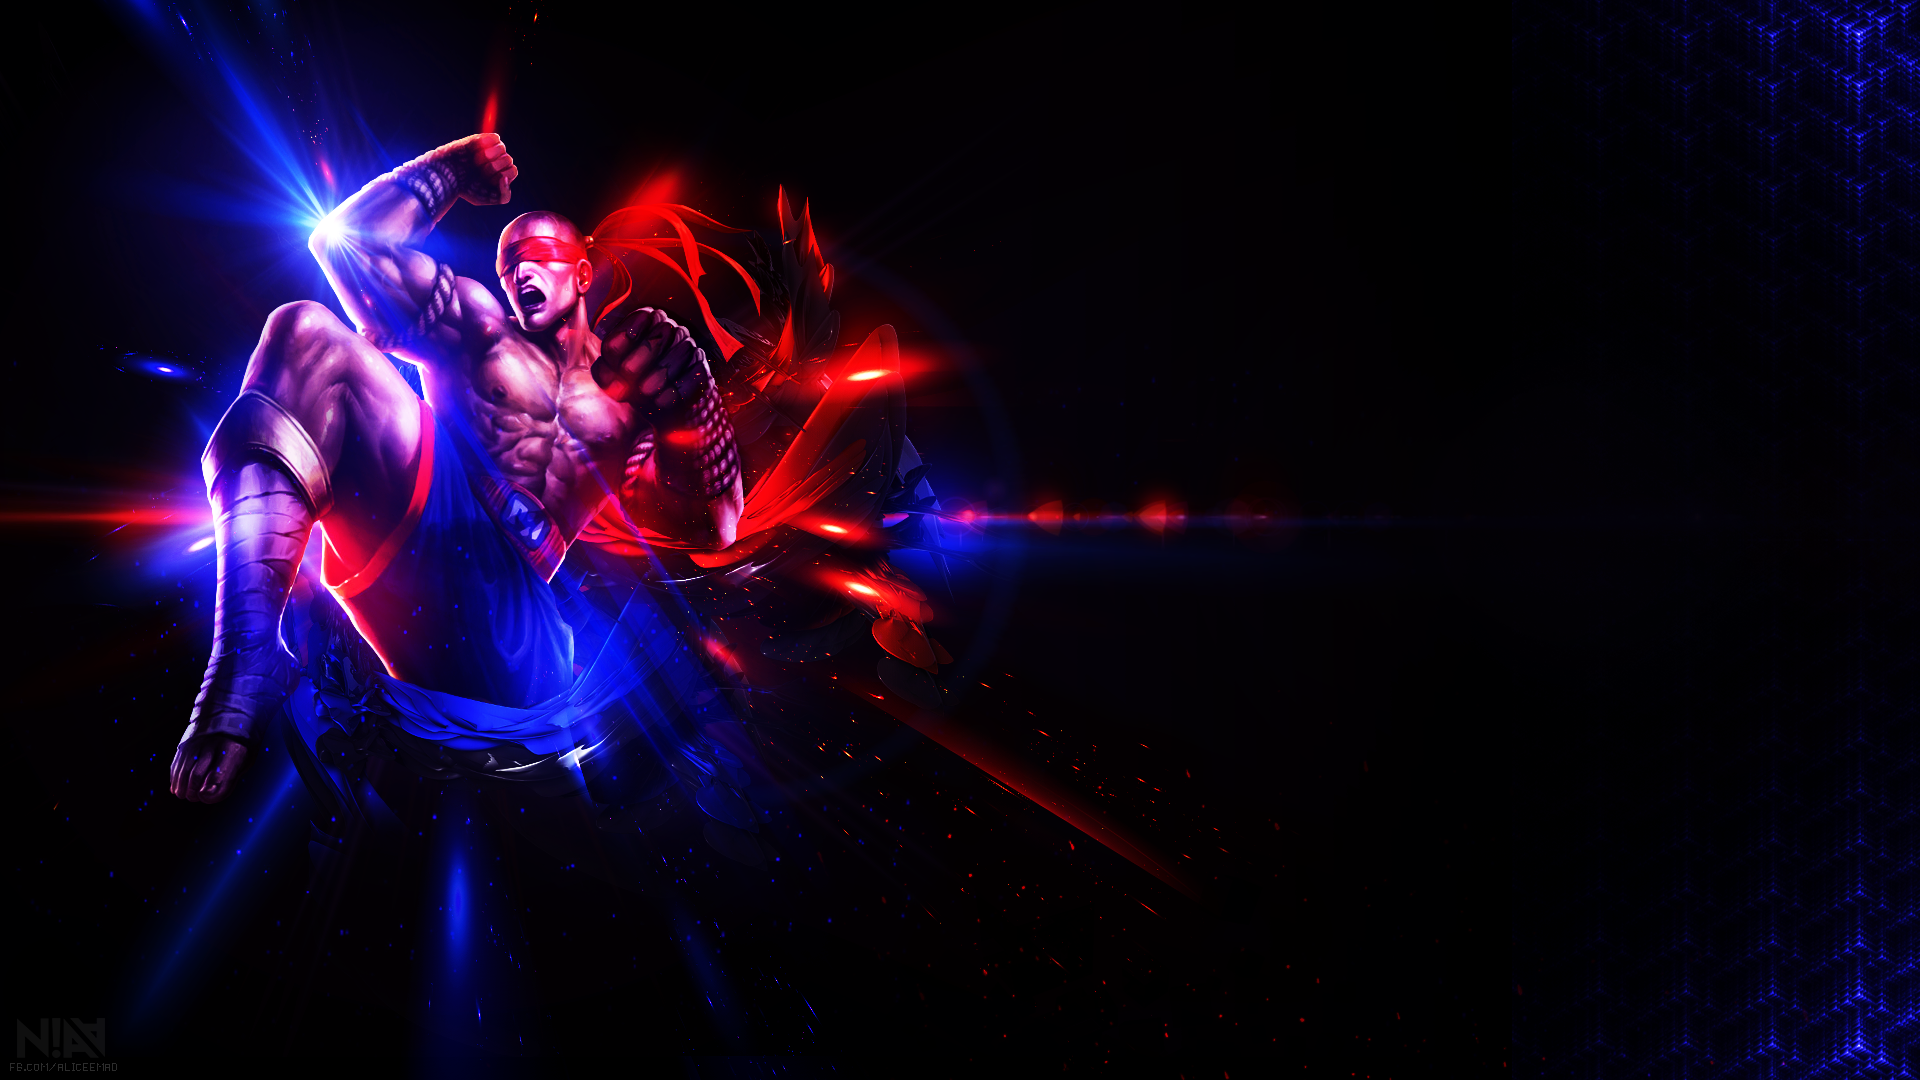 Lee Sin Muay Thai Wallpaper 1920x1080 By Aliceemad On Deviantart